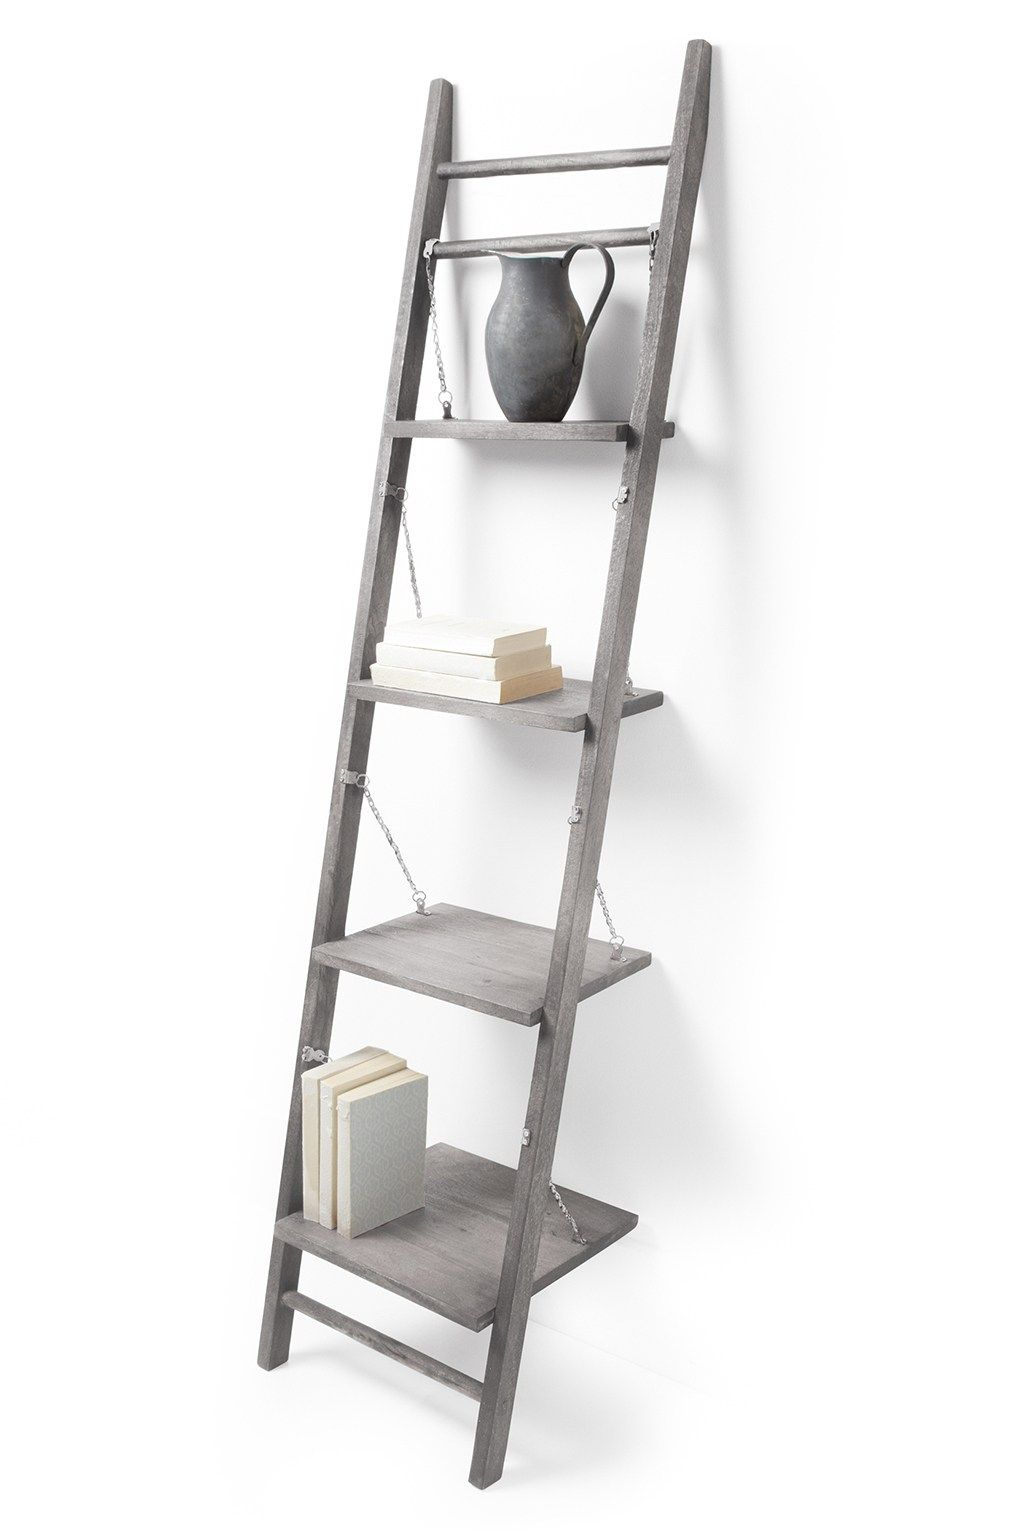 Leaning Shelves Storage French Connection Leaning Shelf Shelves Contemporary Home Furniture